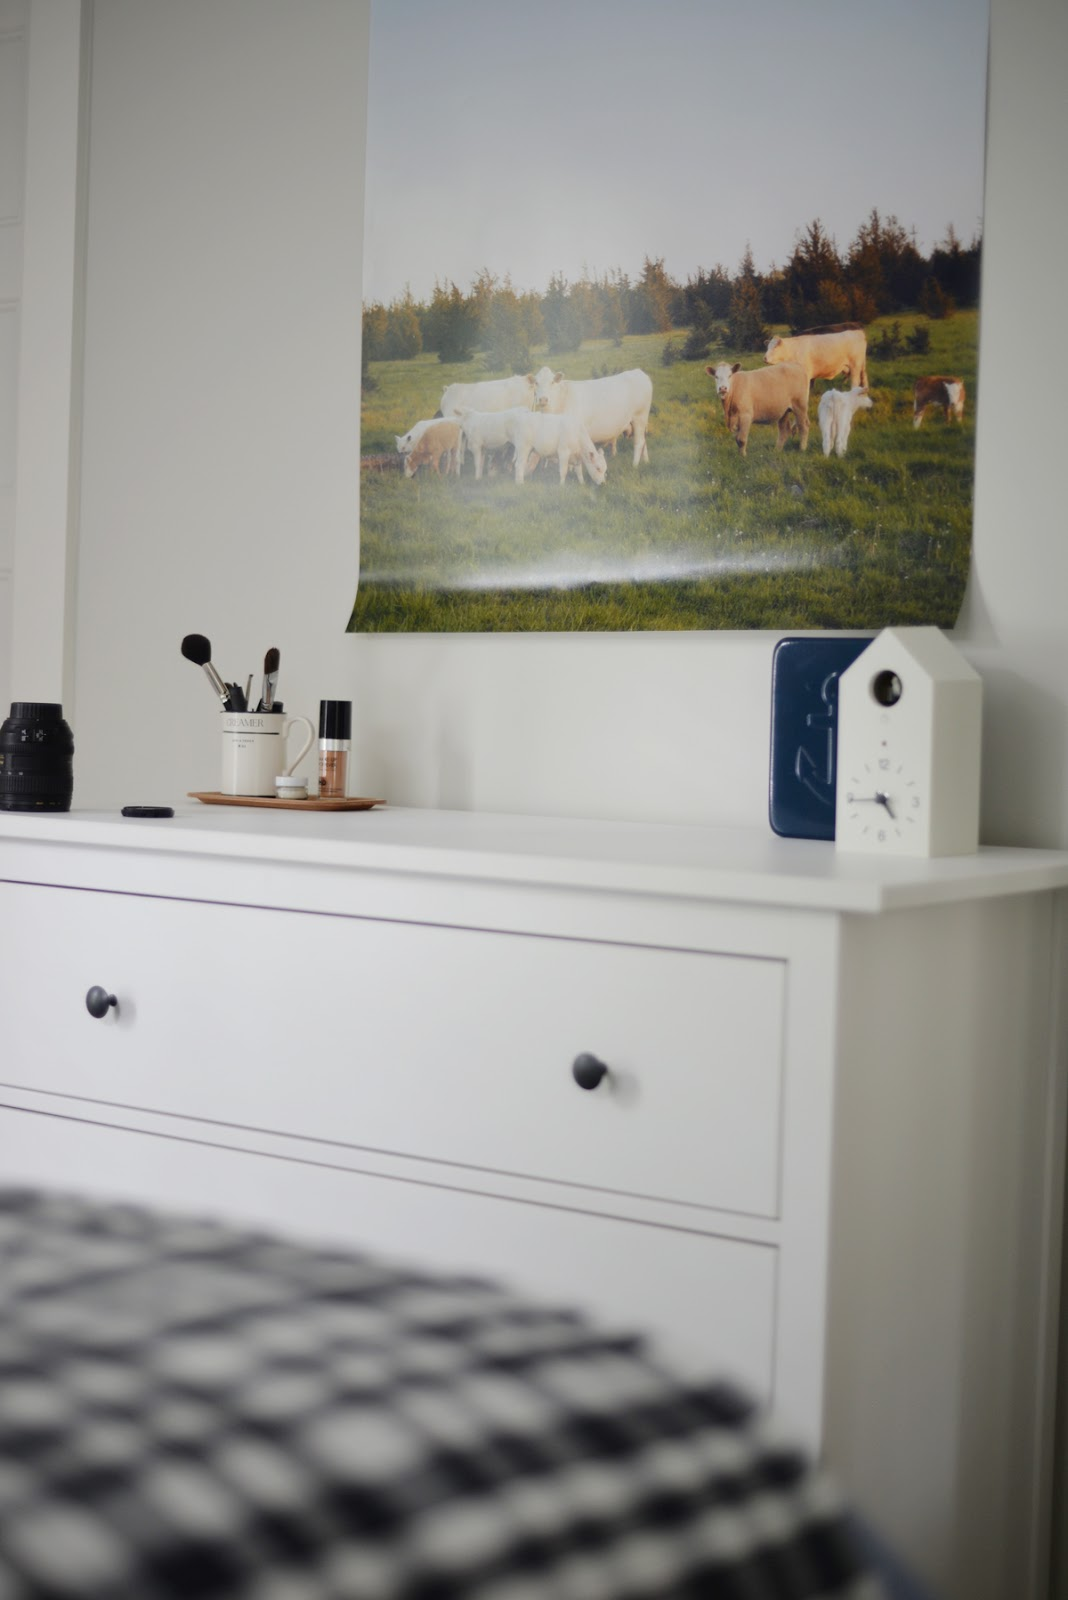 large scale cow photo, muji cuckoo clock, ikea hemnes 3 drawer dresser | Ramblingrenovators.ca